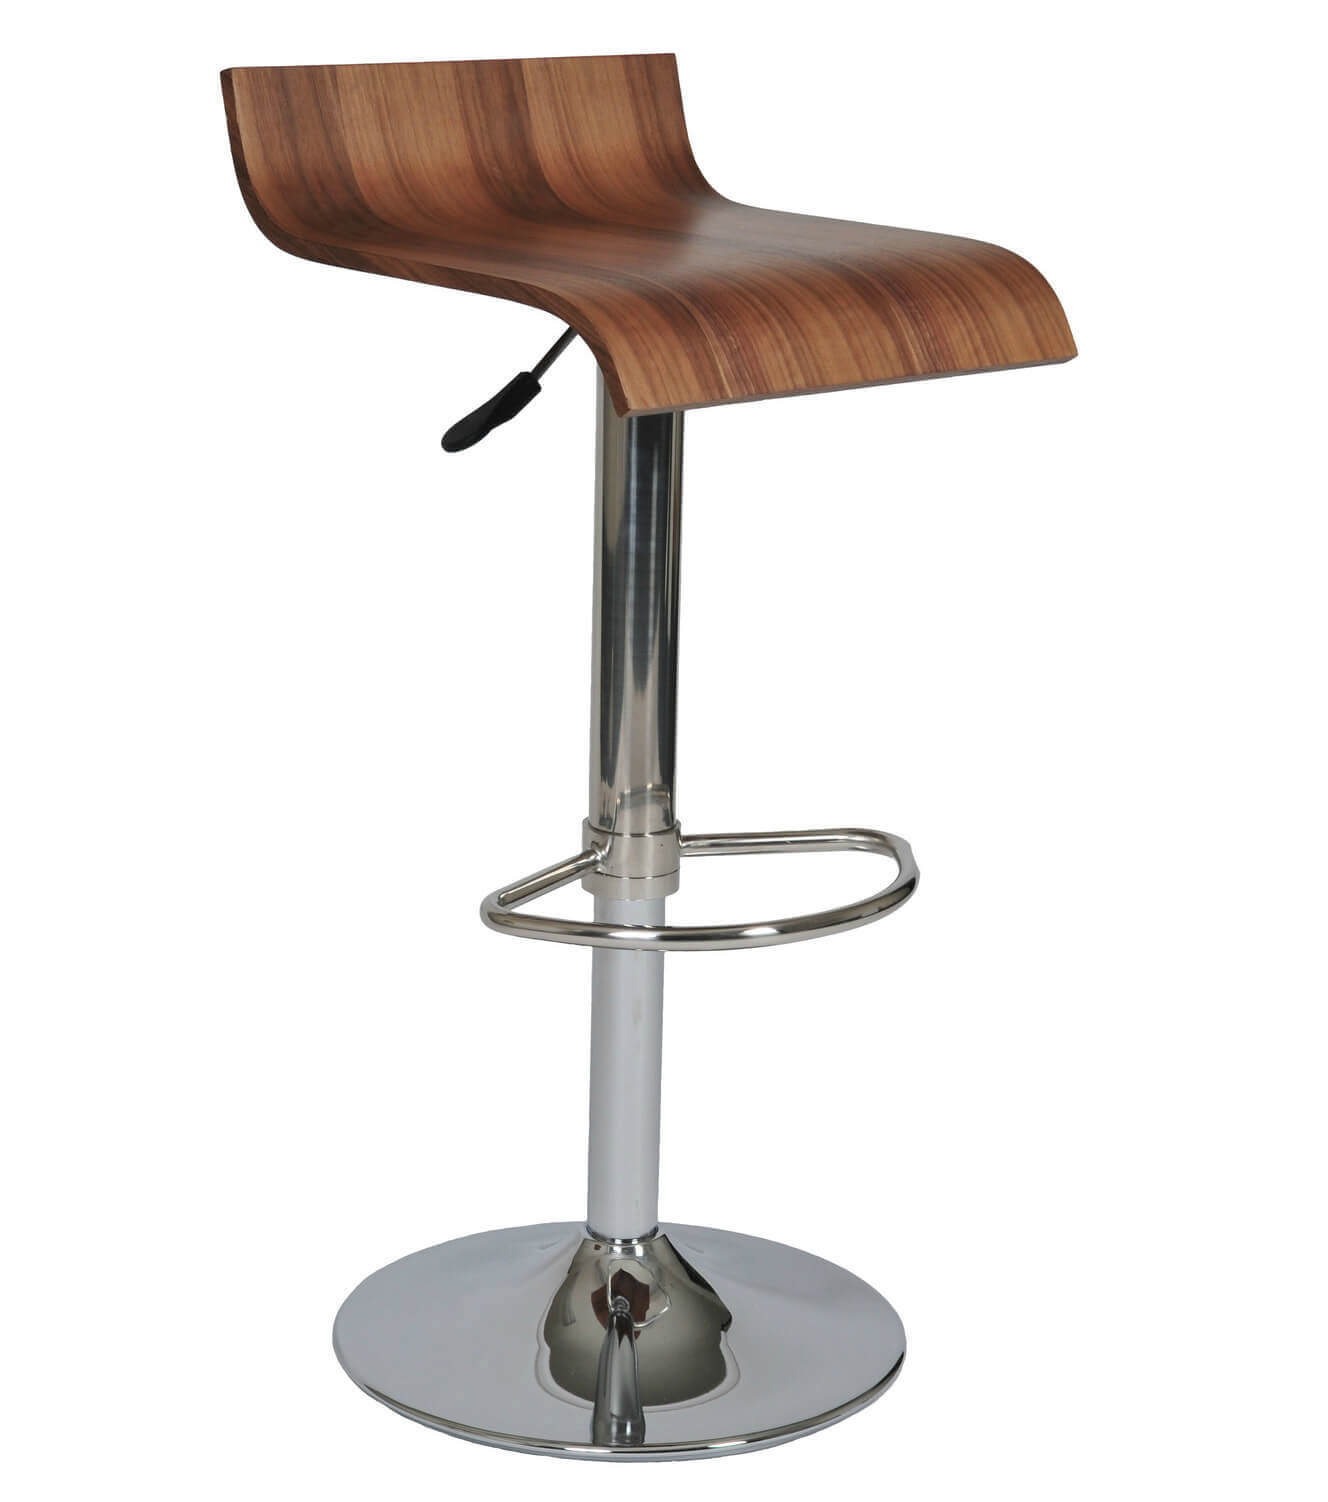 Low back height adjustable stool with chrome finished pedestal base.